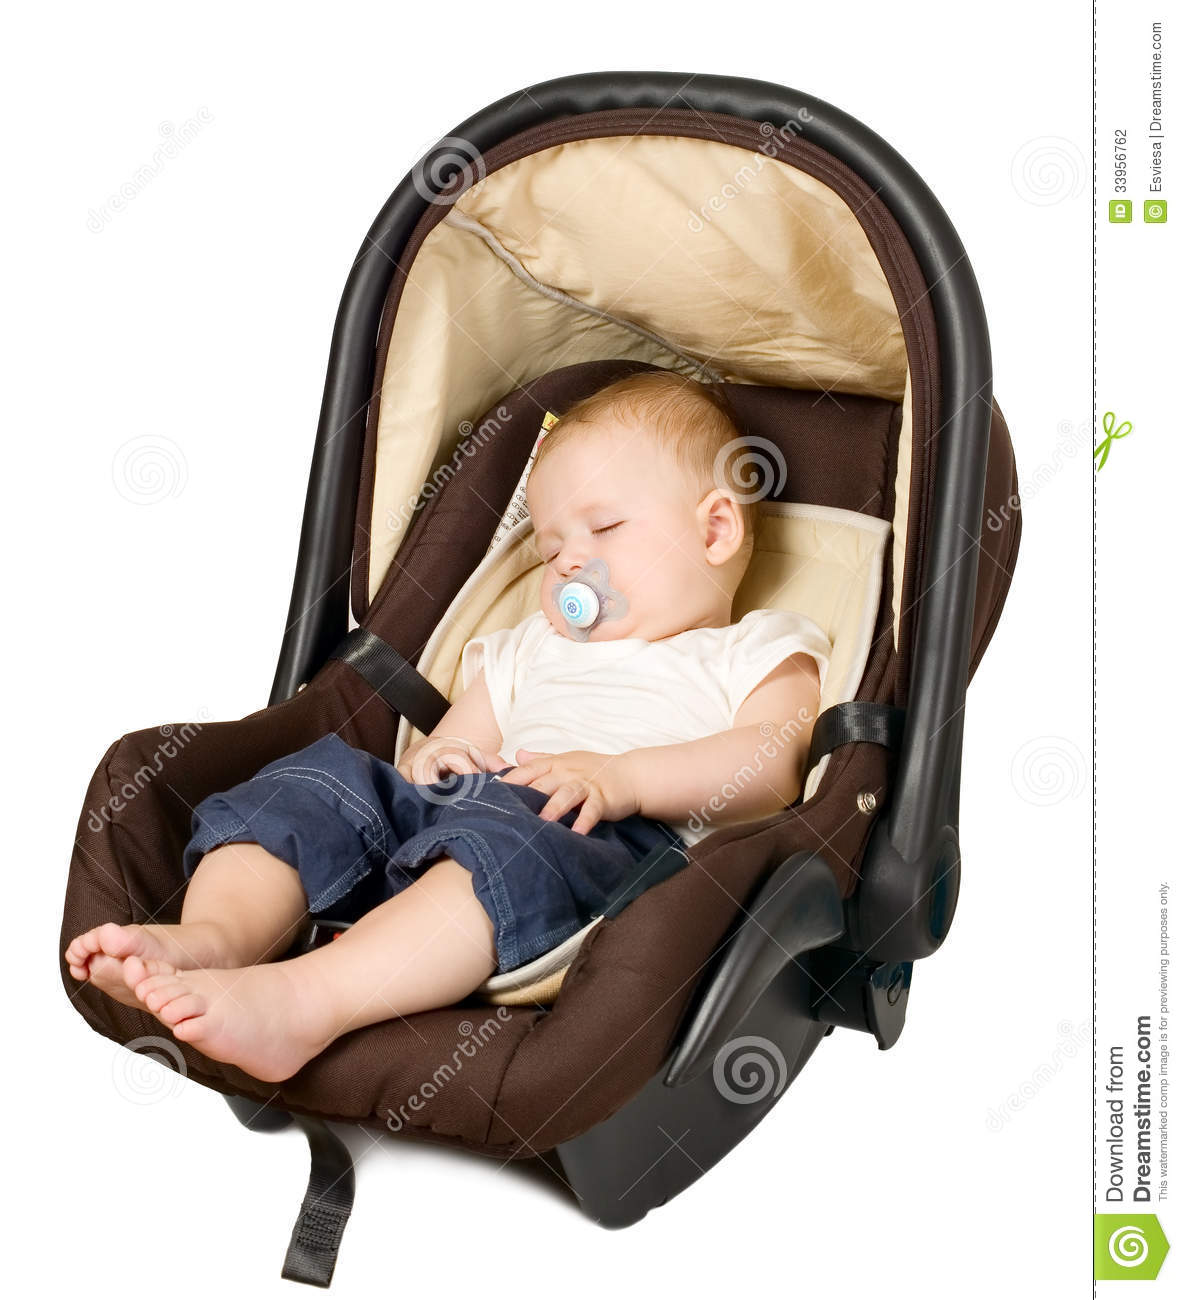 boy in car seat safety concept stock photography image 33956762. Black Bedroom Furniture Sets. Home Design Ideas